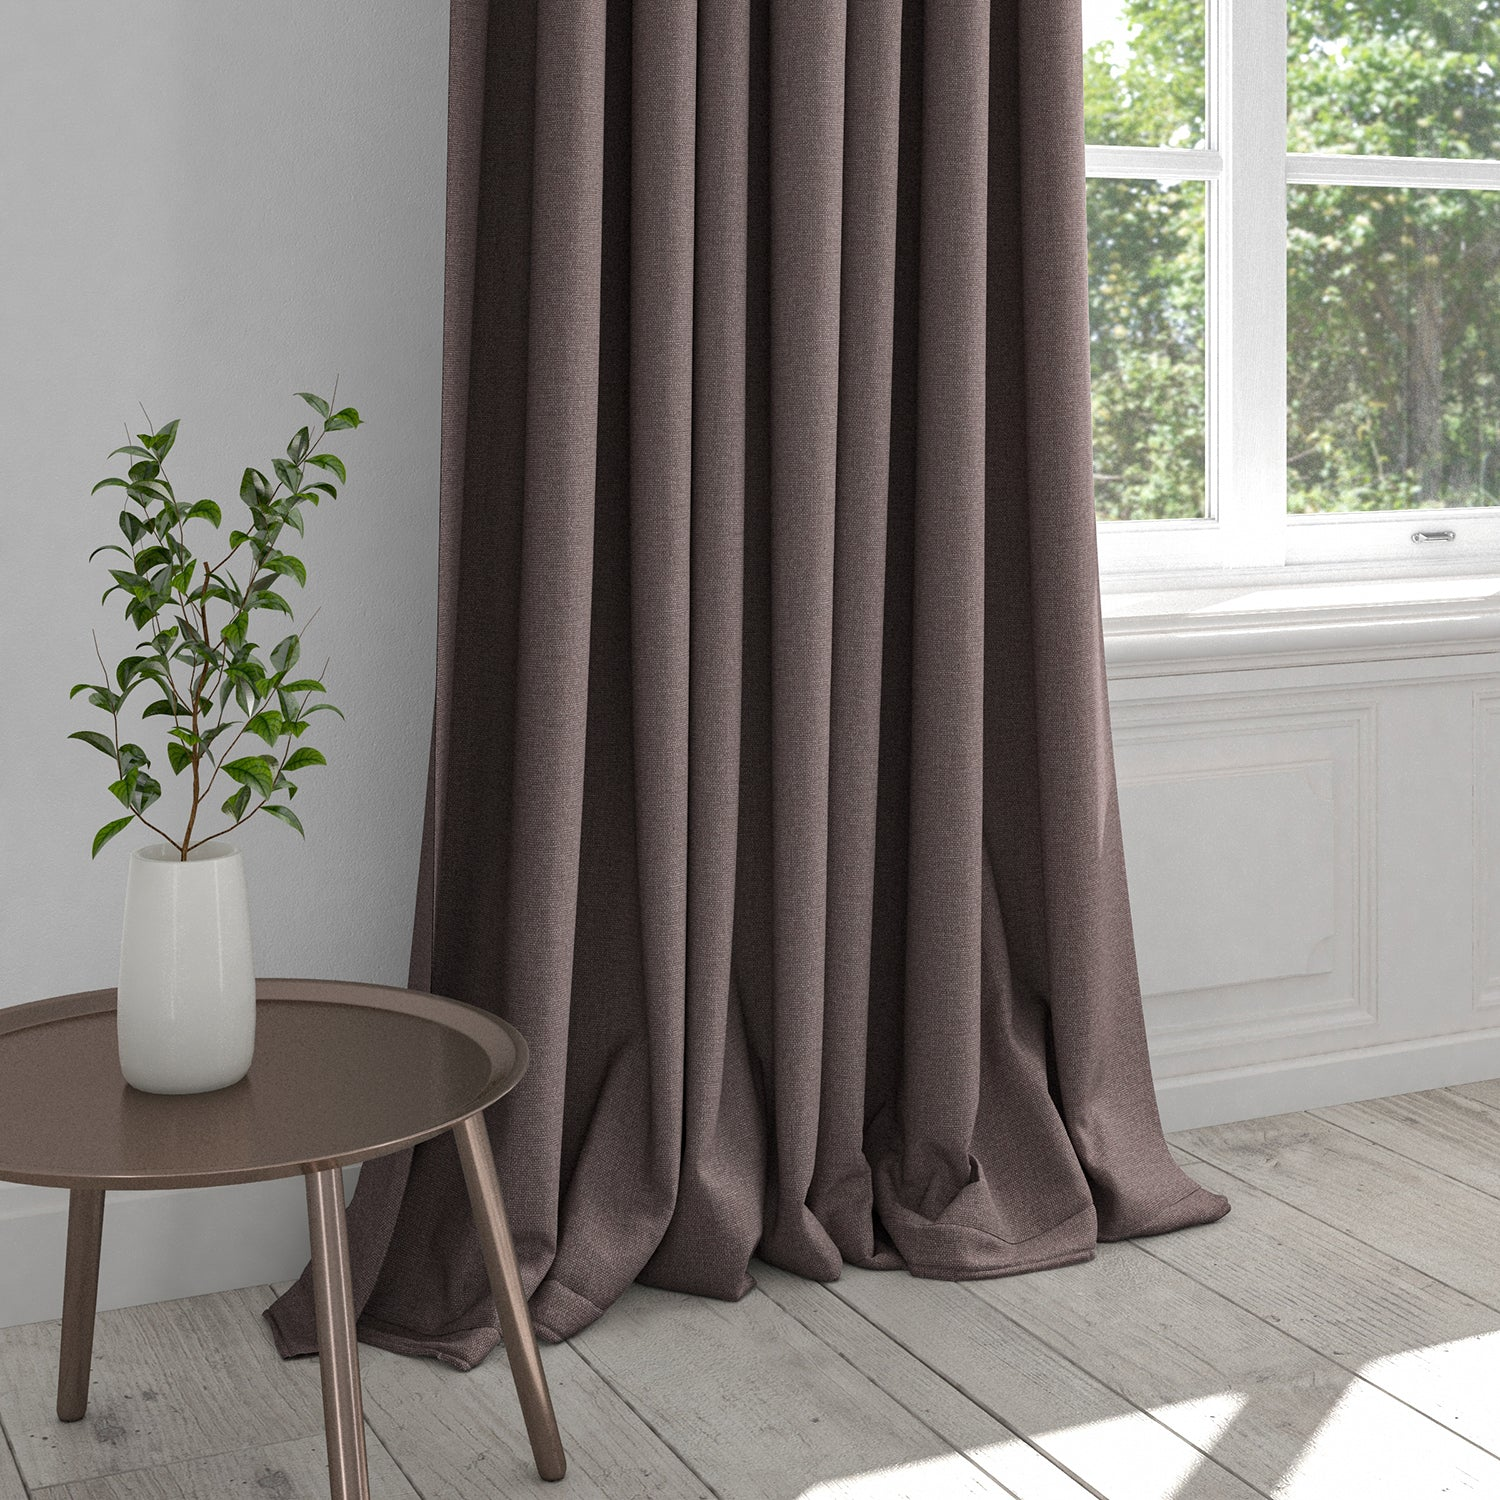 Curtain in a washable plain purple cotton fabric